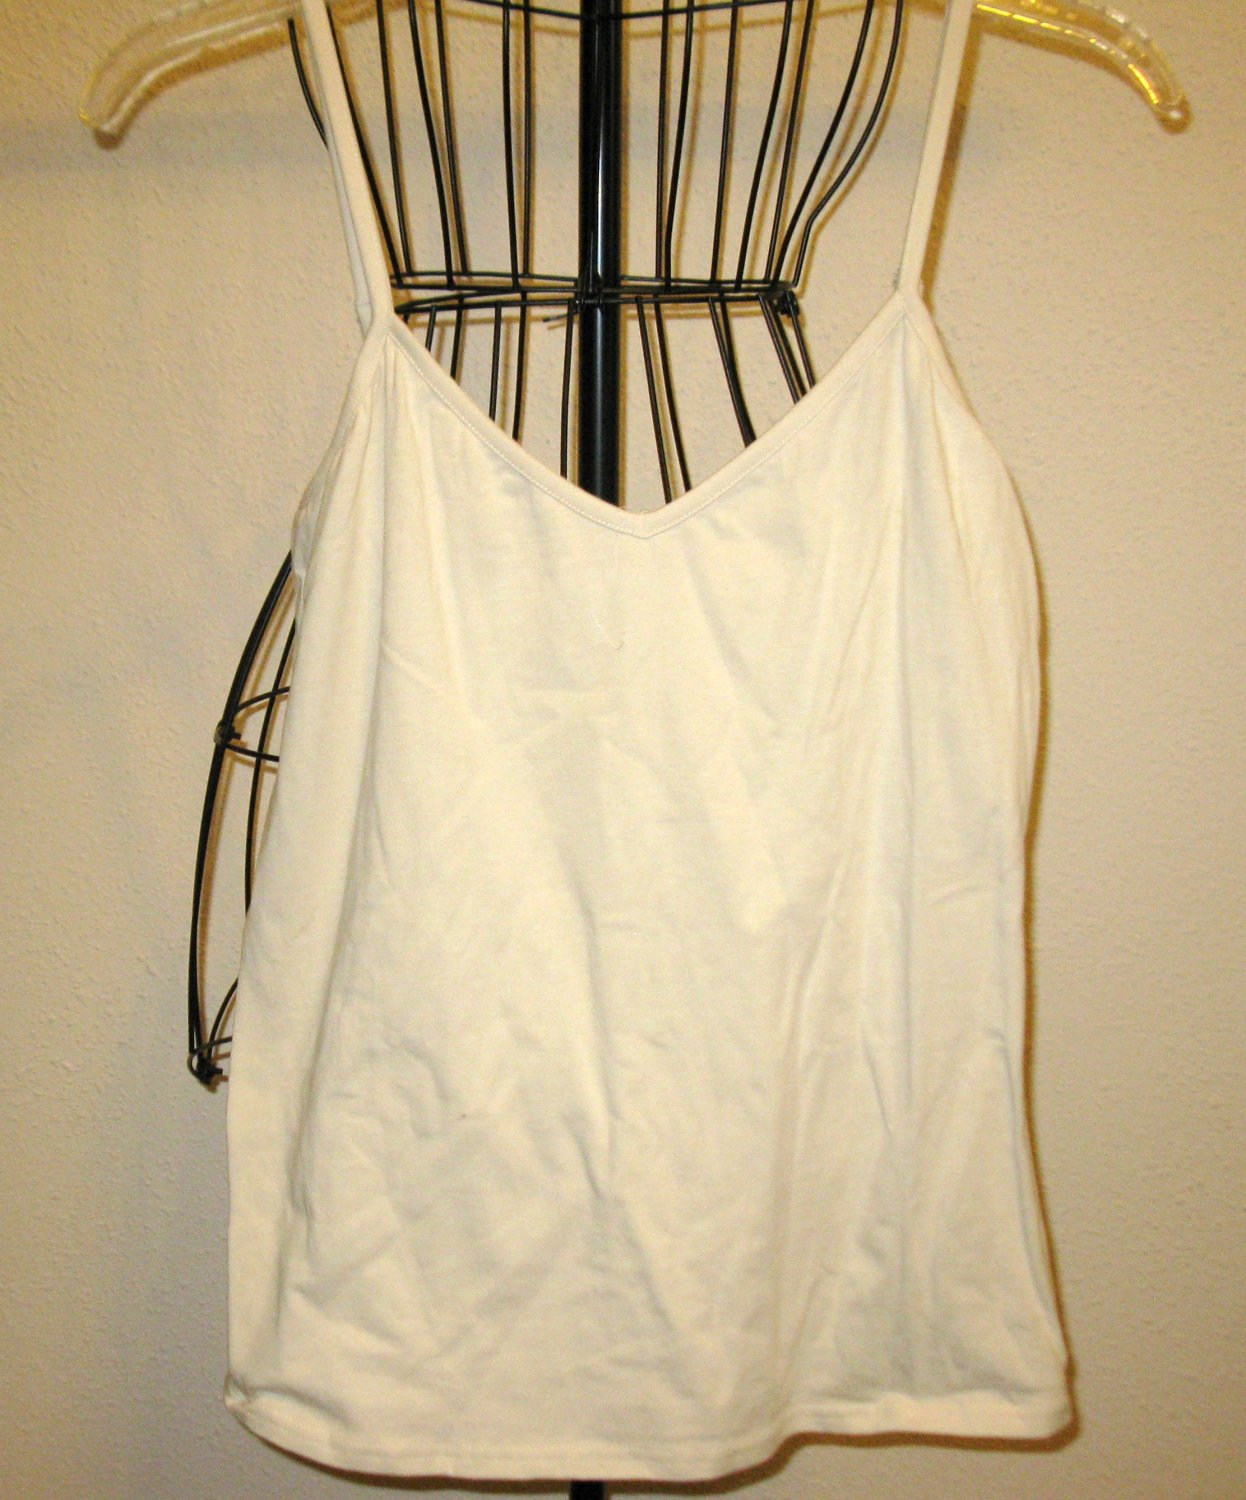 Off White Spaghetti Strap Top Blouse by Lane Bryant Size M Nice! #X193